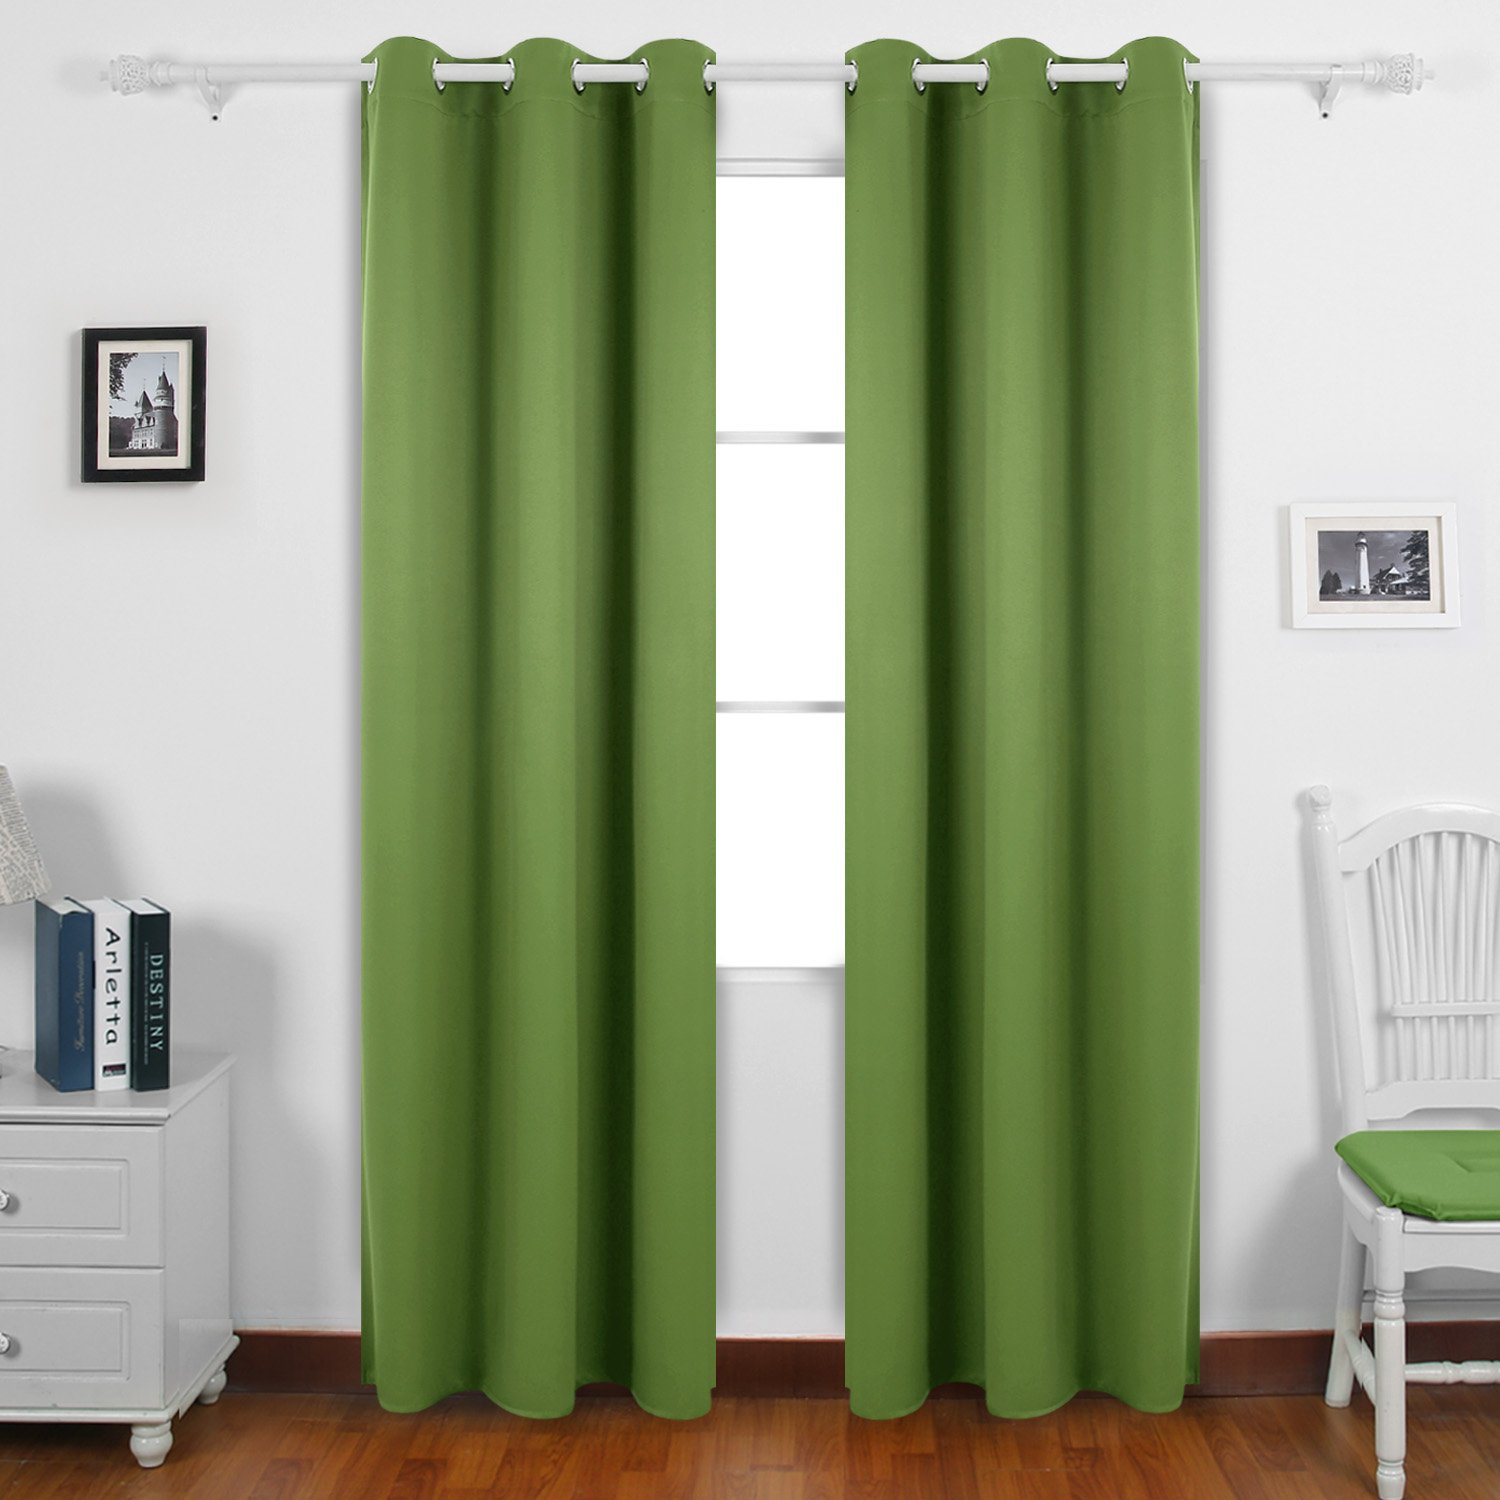 Deconovo Thermal Insulated Curtain Grommet Room Darkening Curtains for Windows